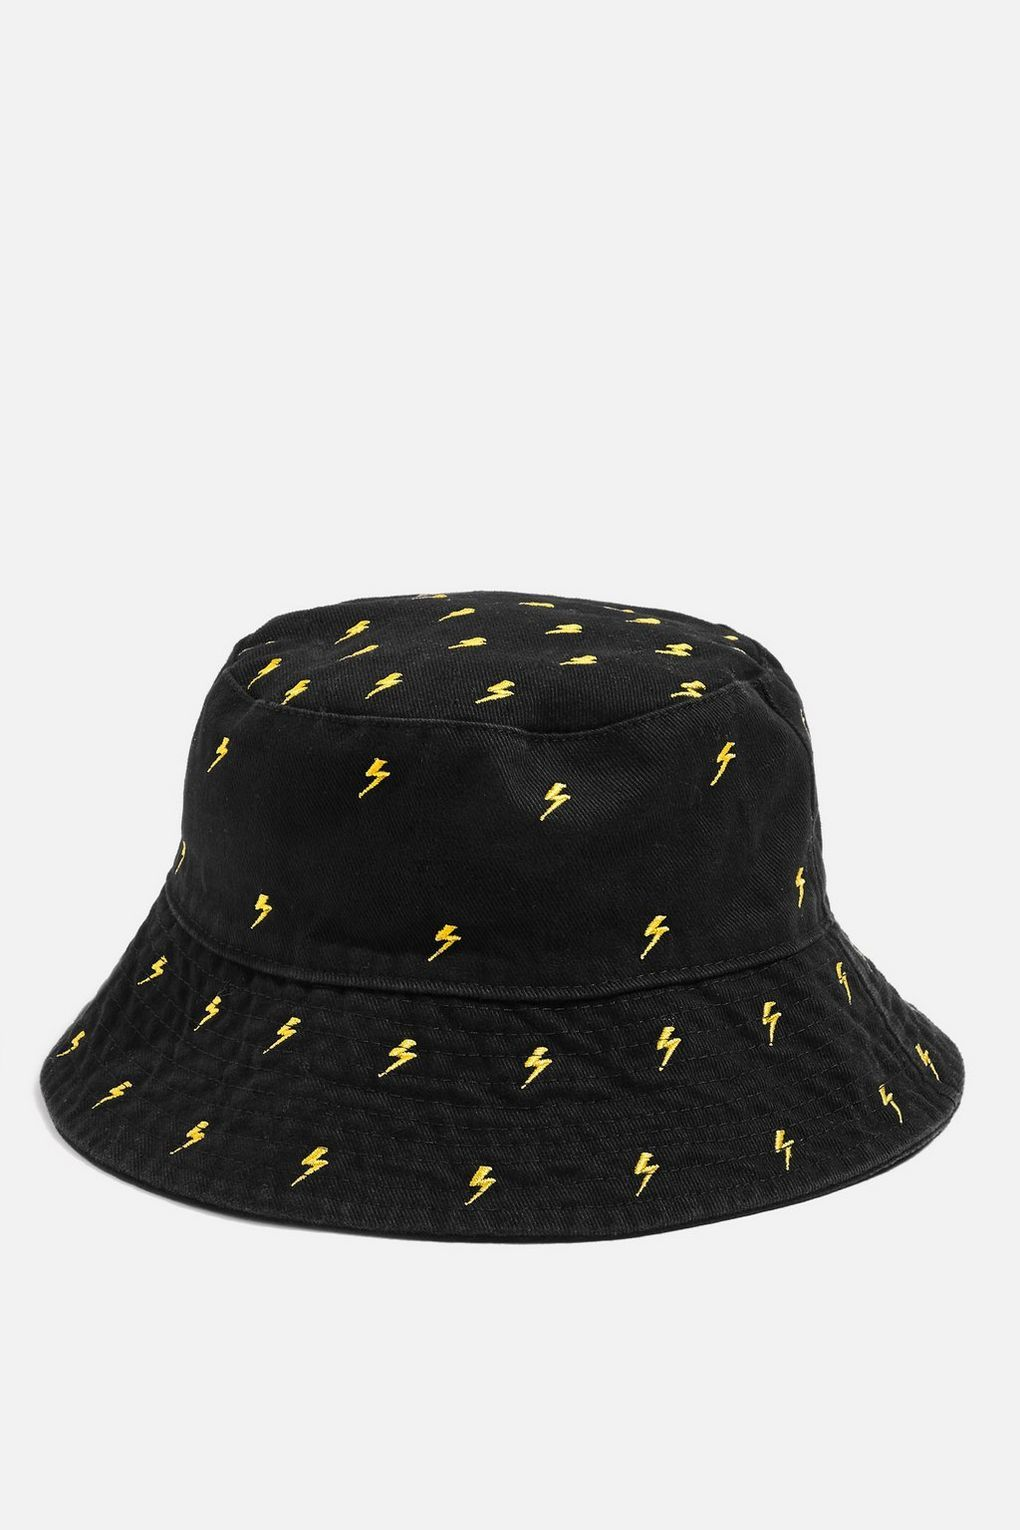 Embroidered Lightning Bucket Hat New In Fashion New In Topshop Europe Bucket Hat Fashion Cute Hats Bucket Hat